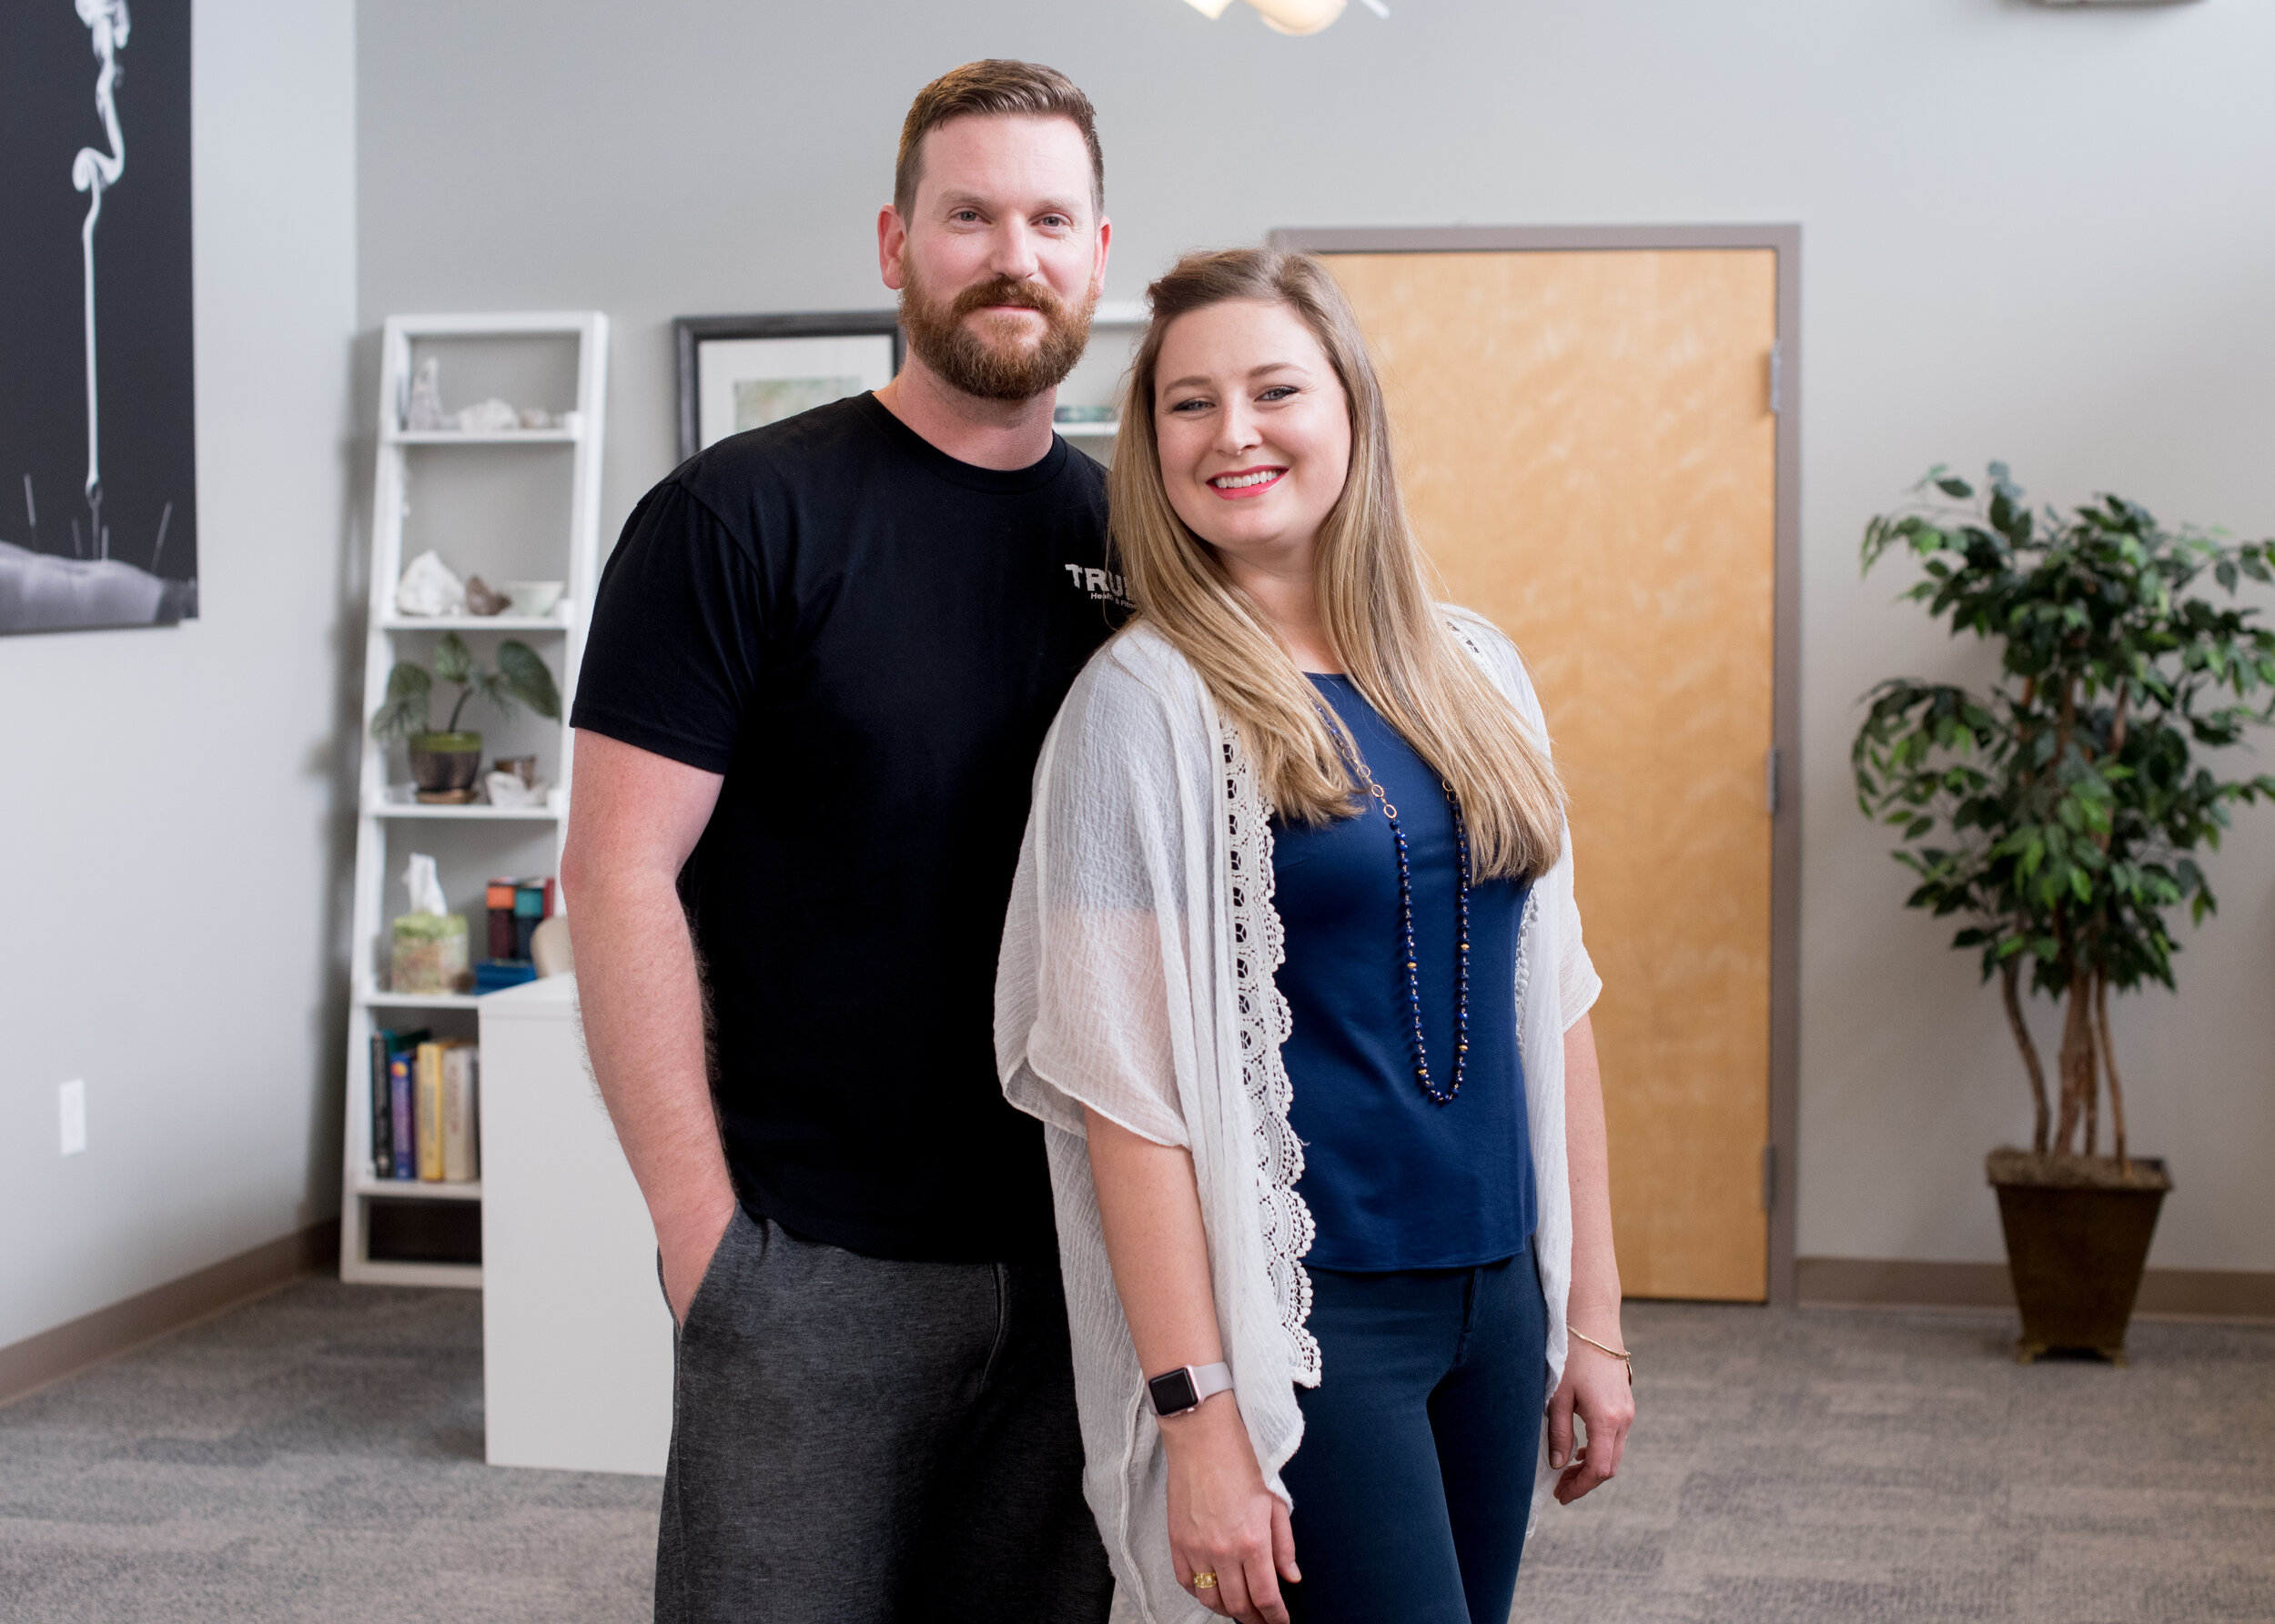 Dr. Kevin & Emily Andrews  Owners of True Health and Fitness